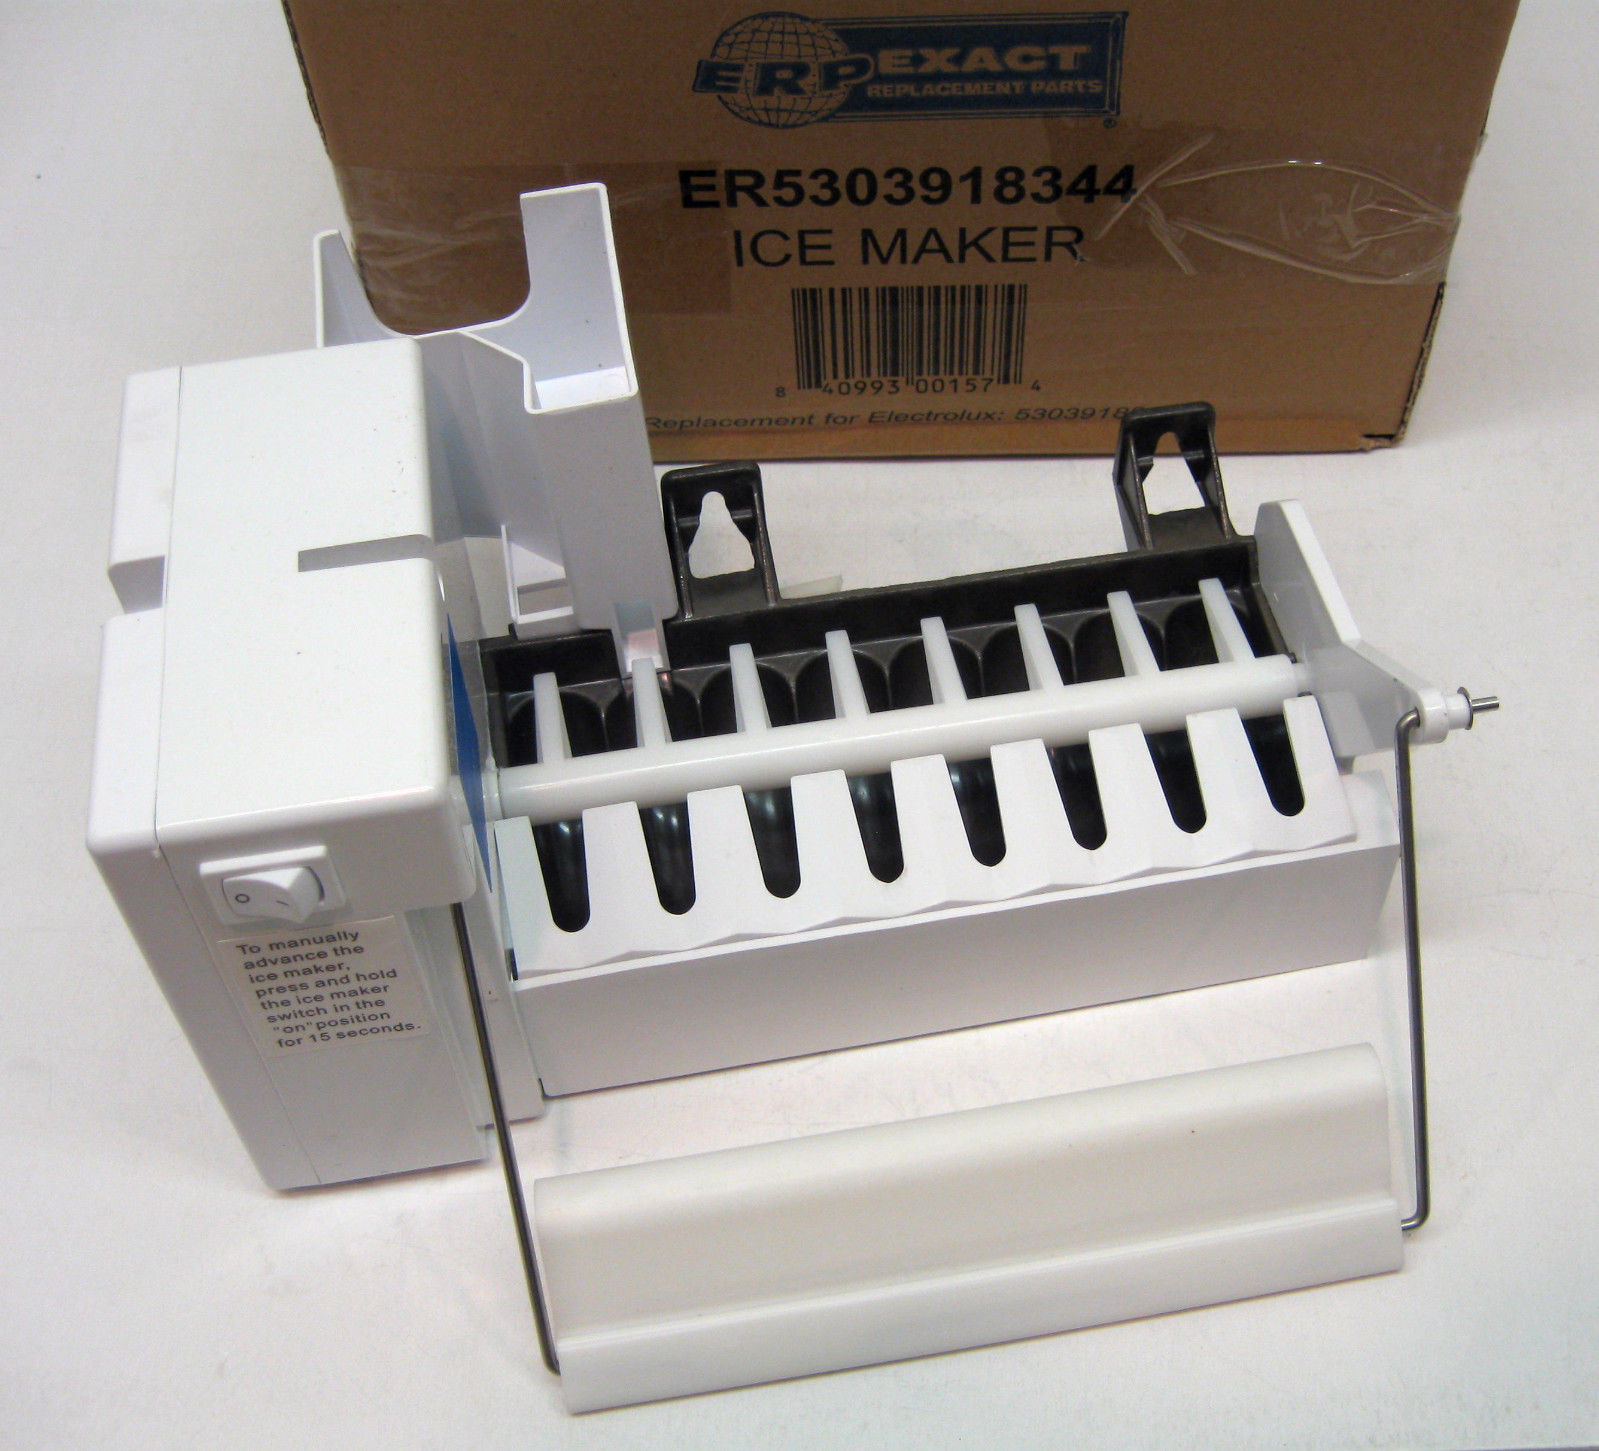 Refrigerator Icemaker For Frigidaire Electrolux 5303918344